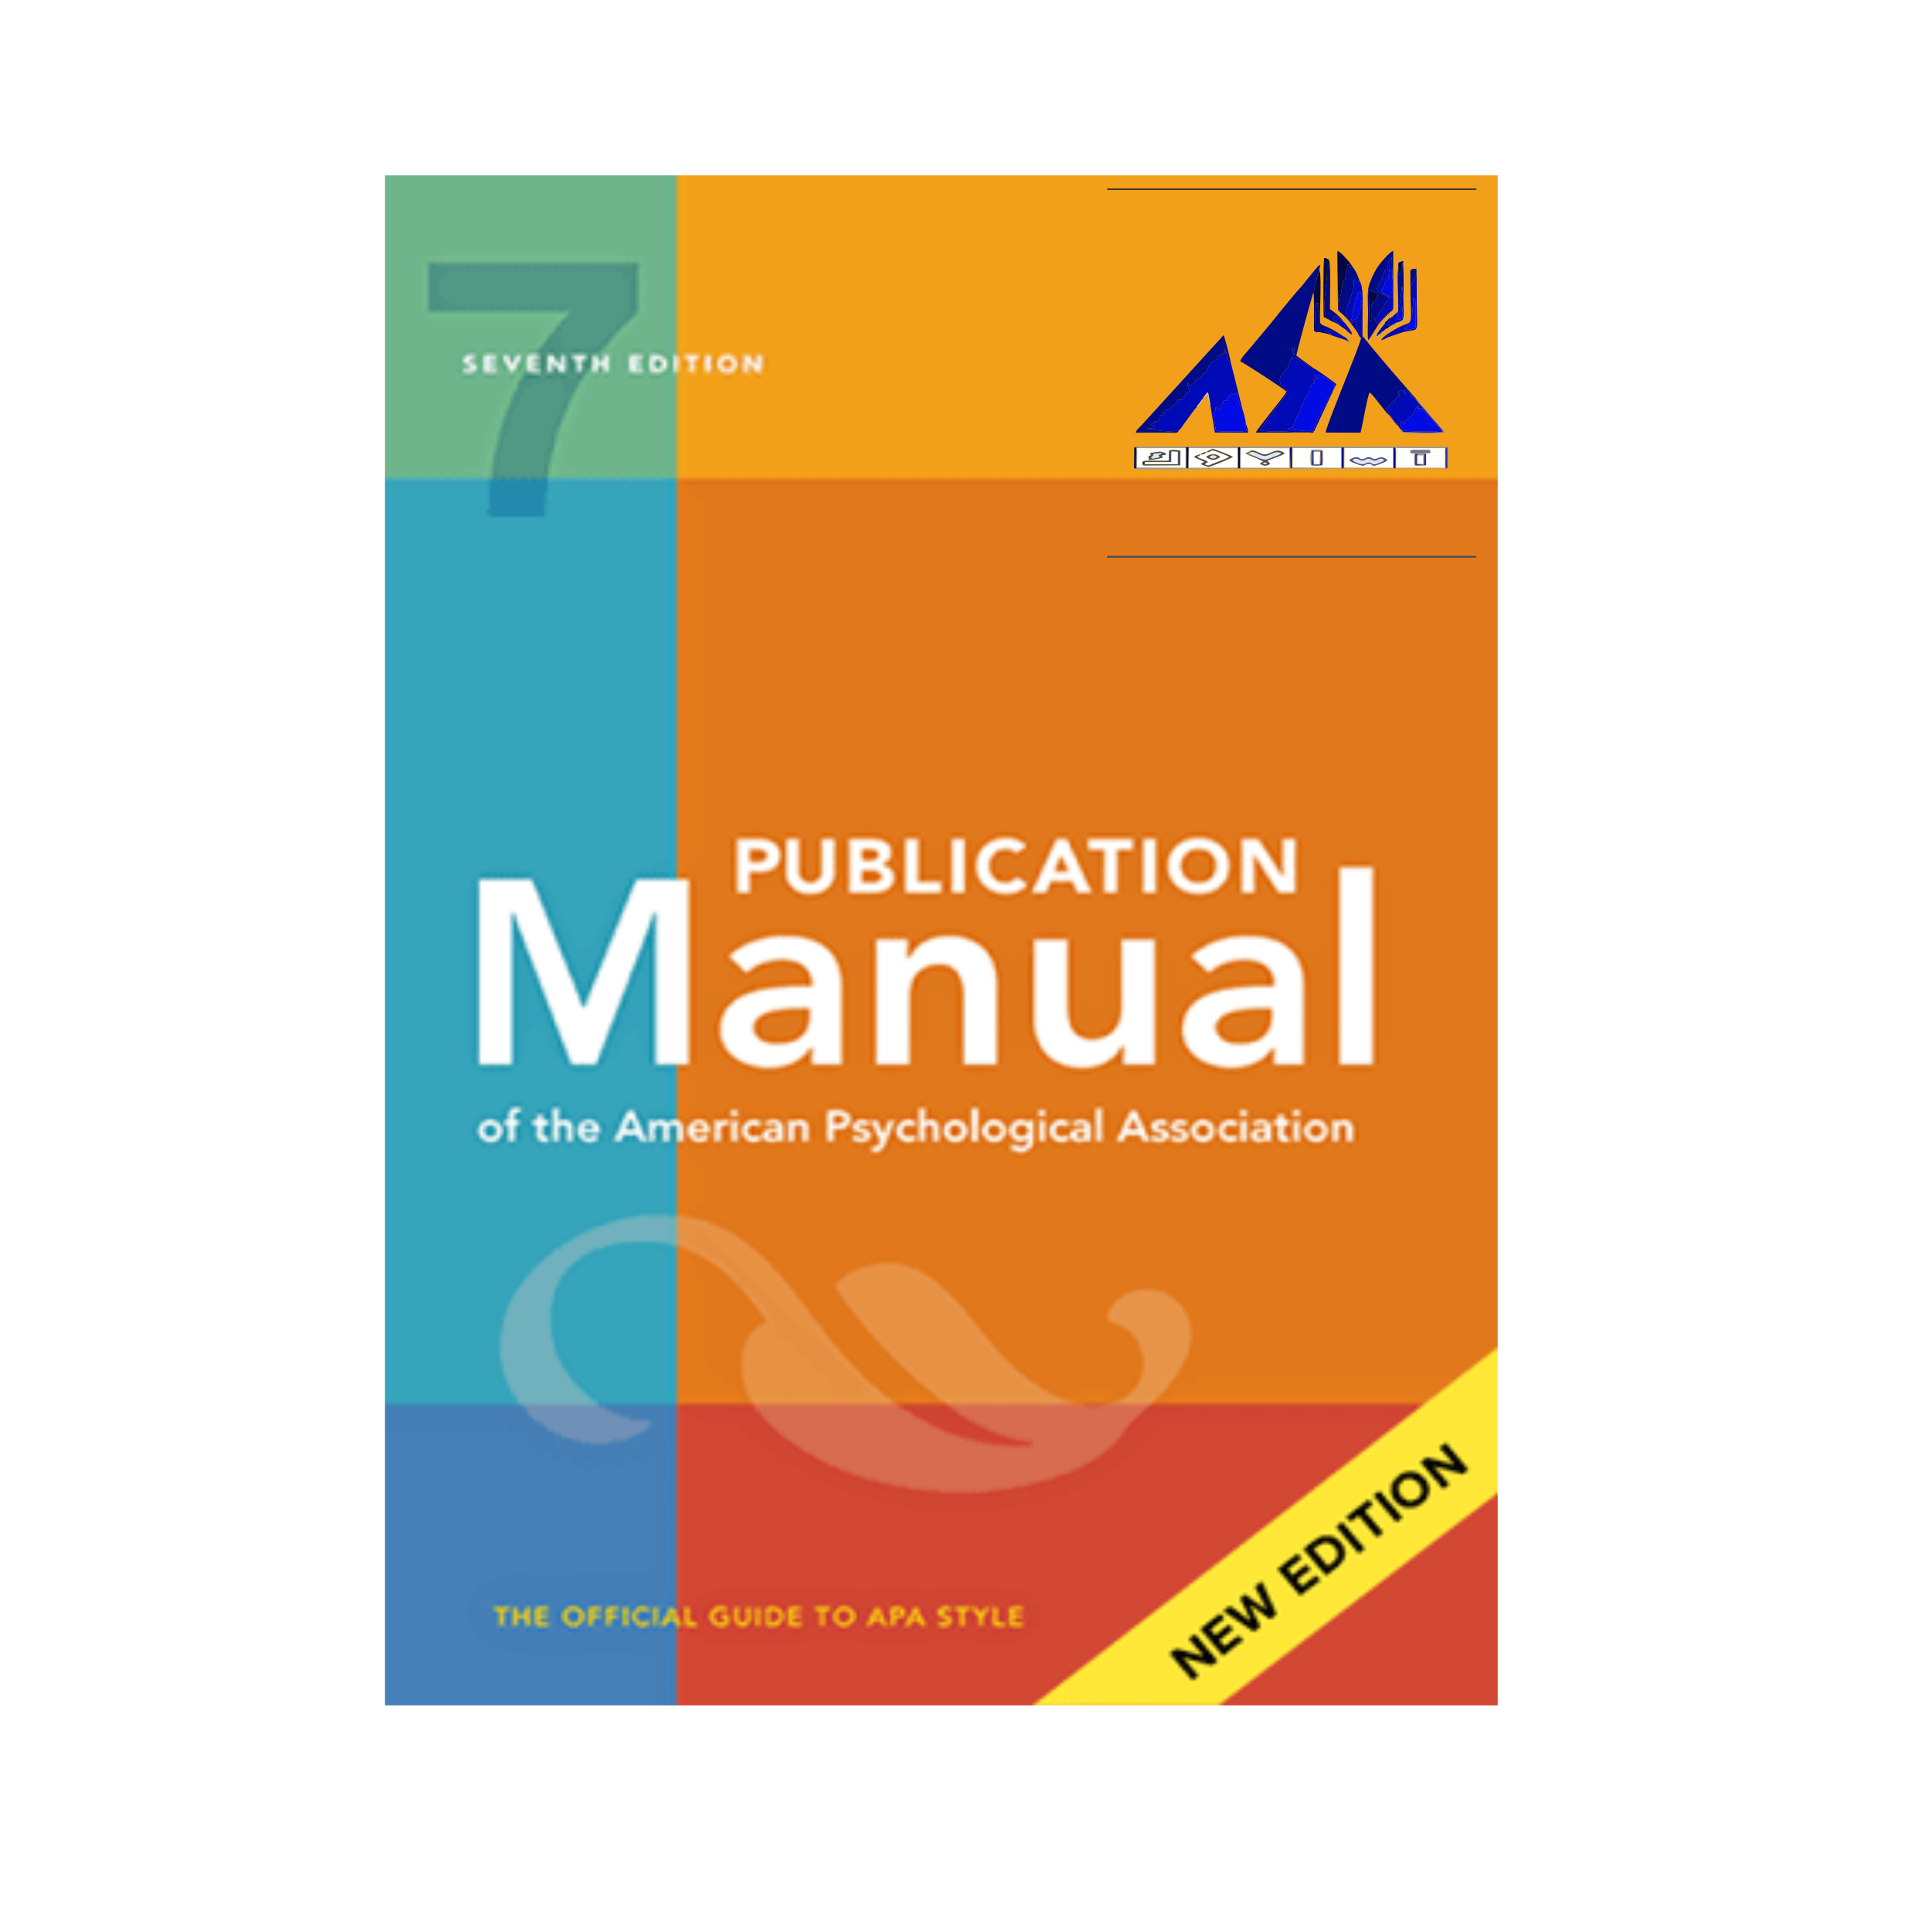 Publication Manual 7th